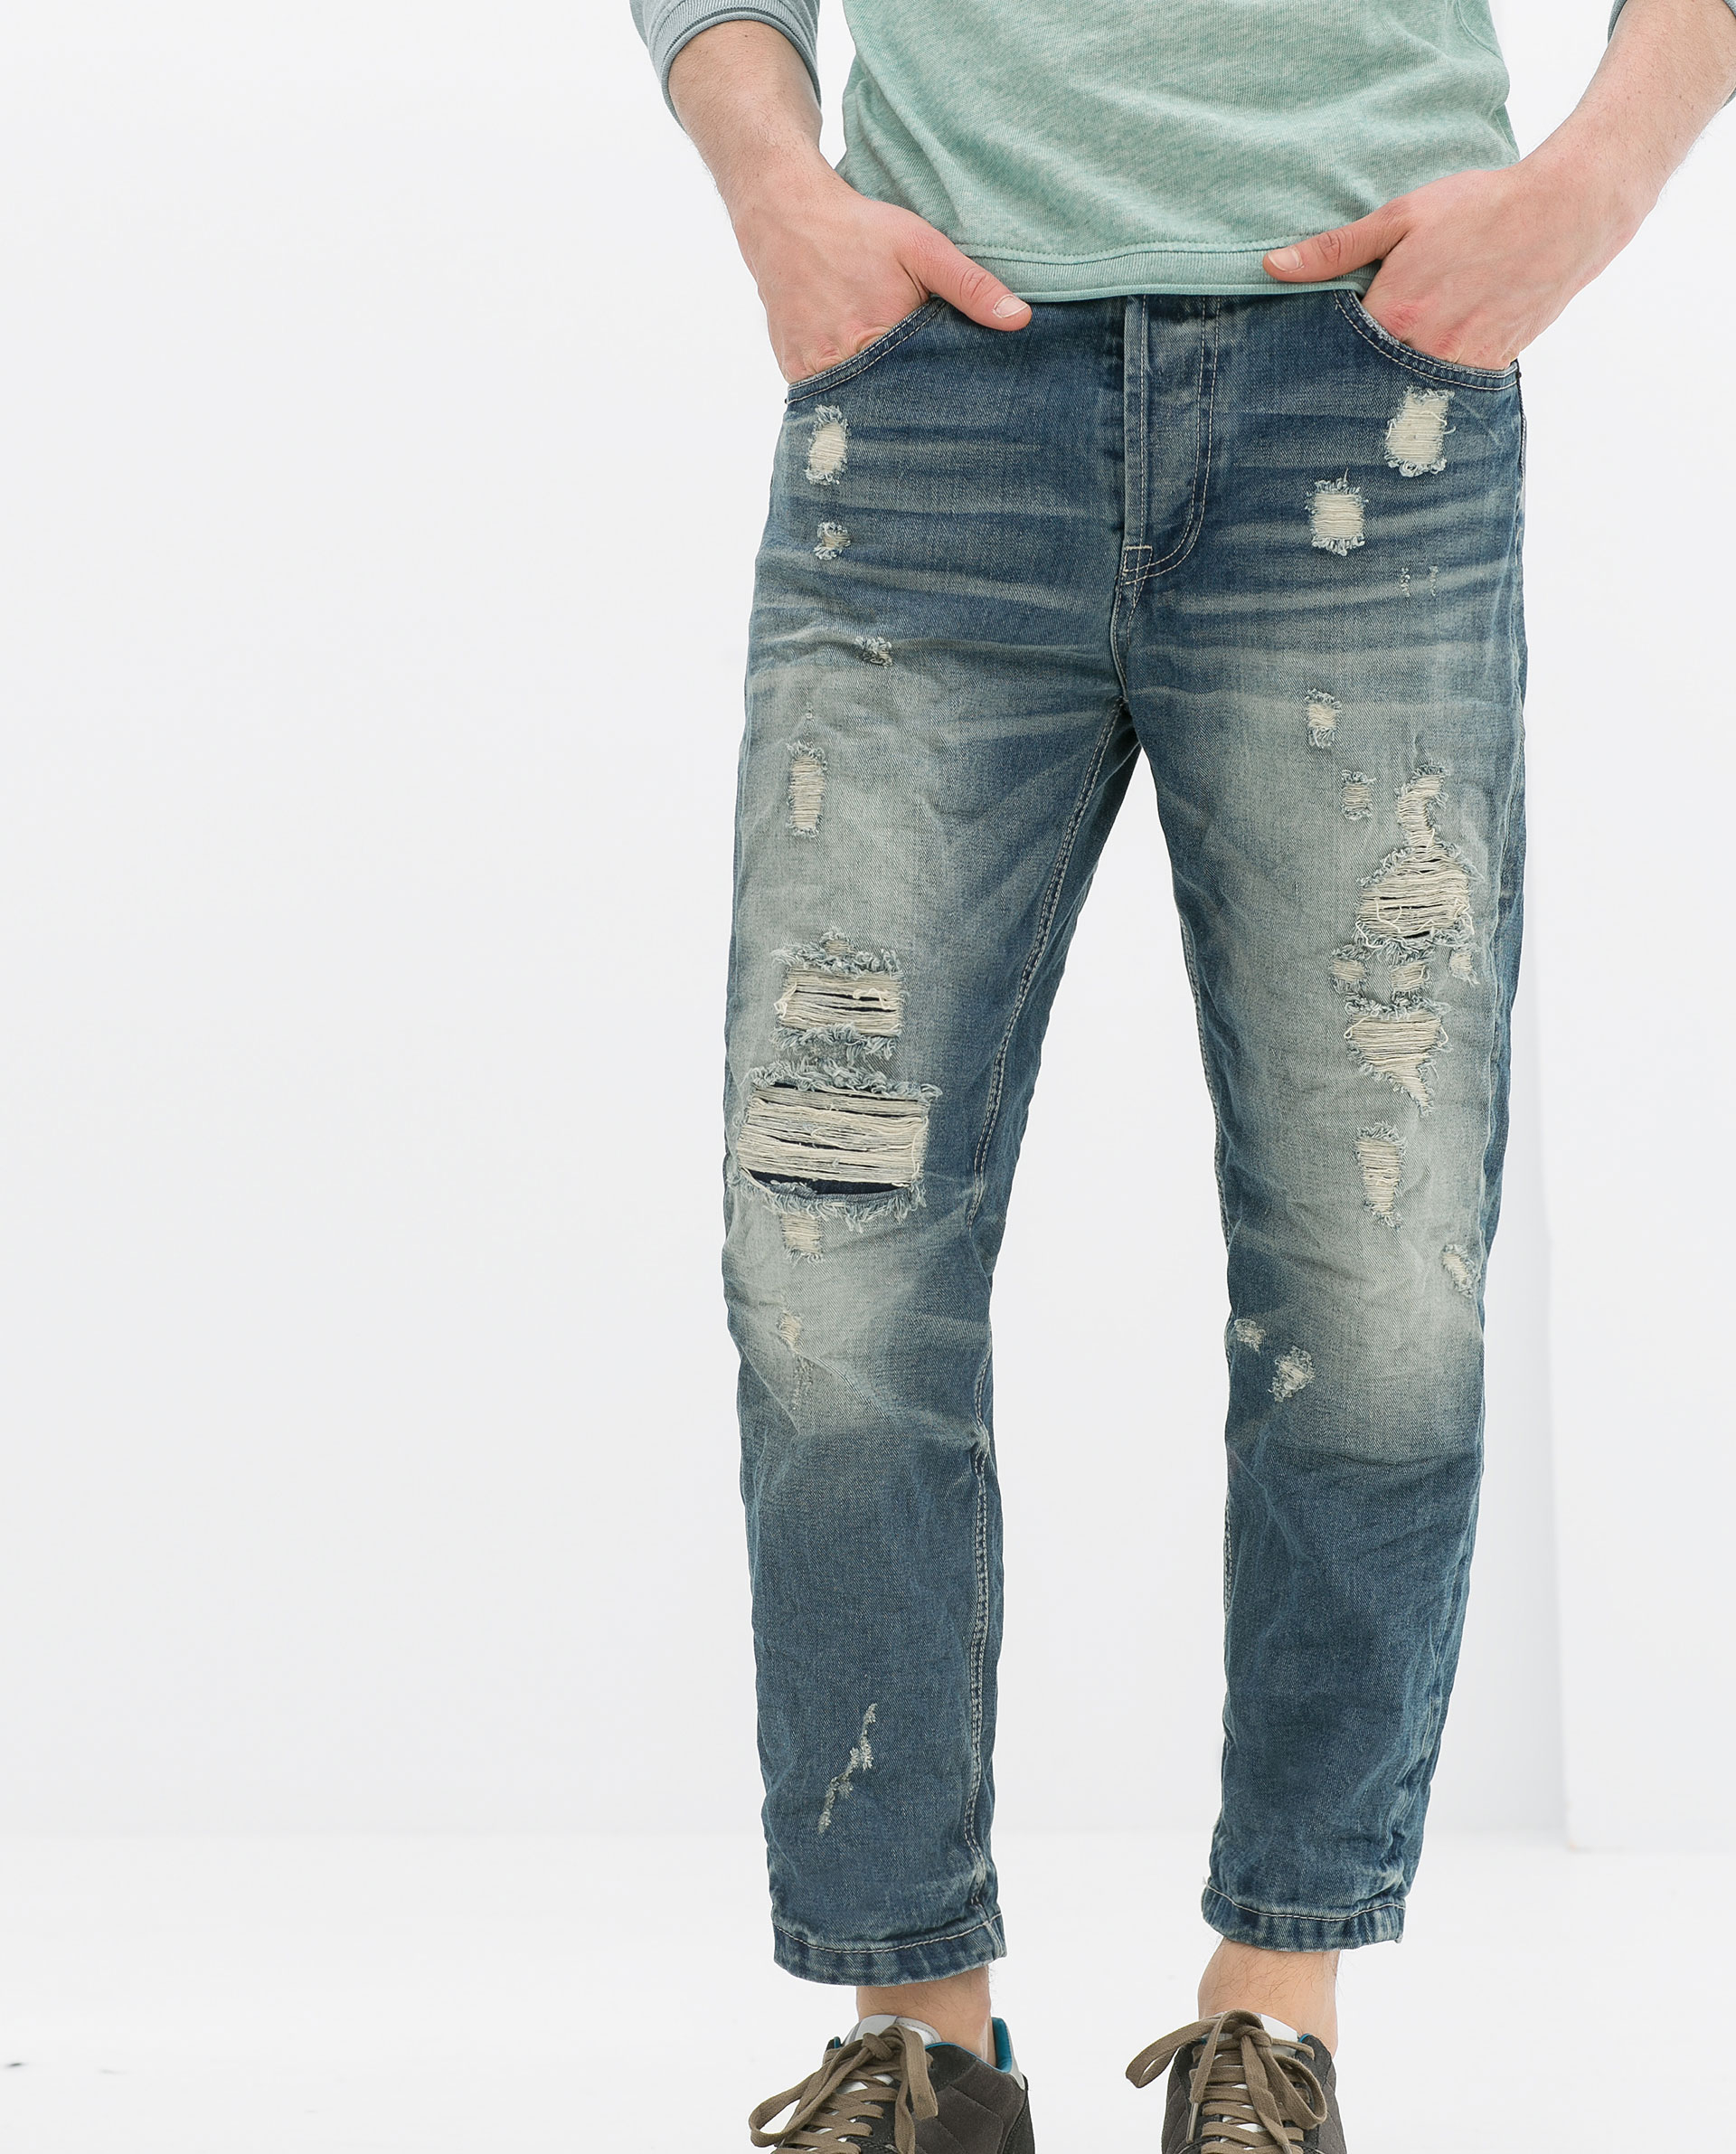 Mens Ripped Jeans For Sale